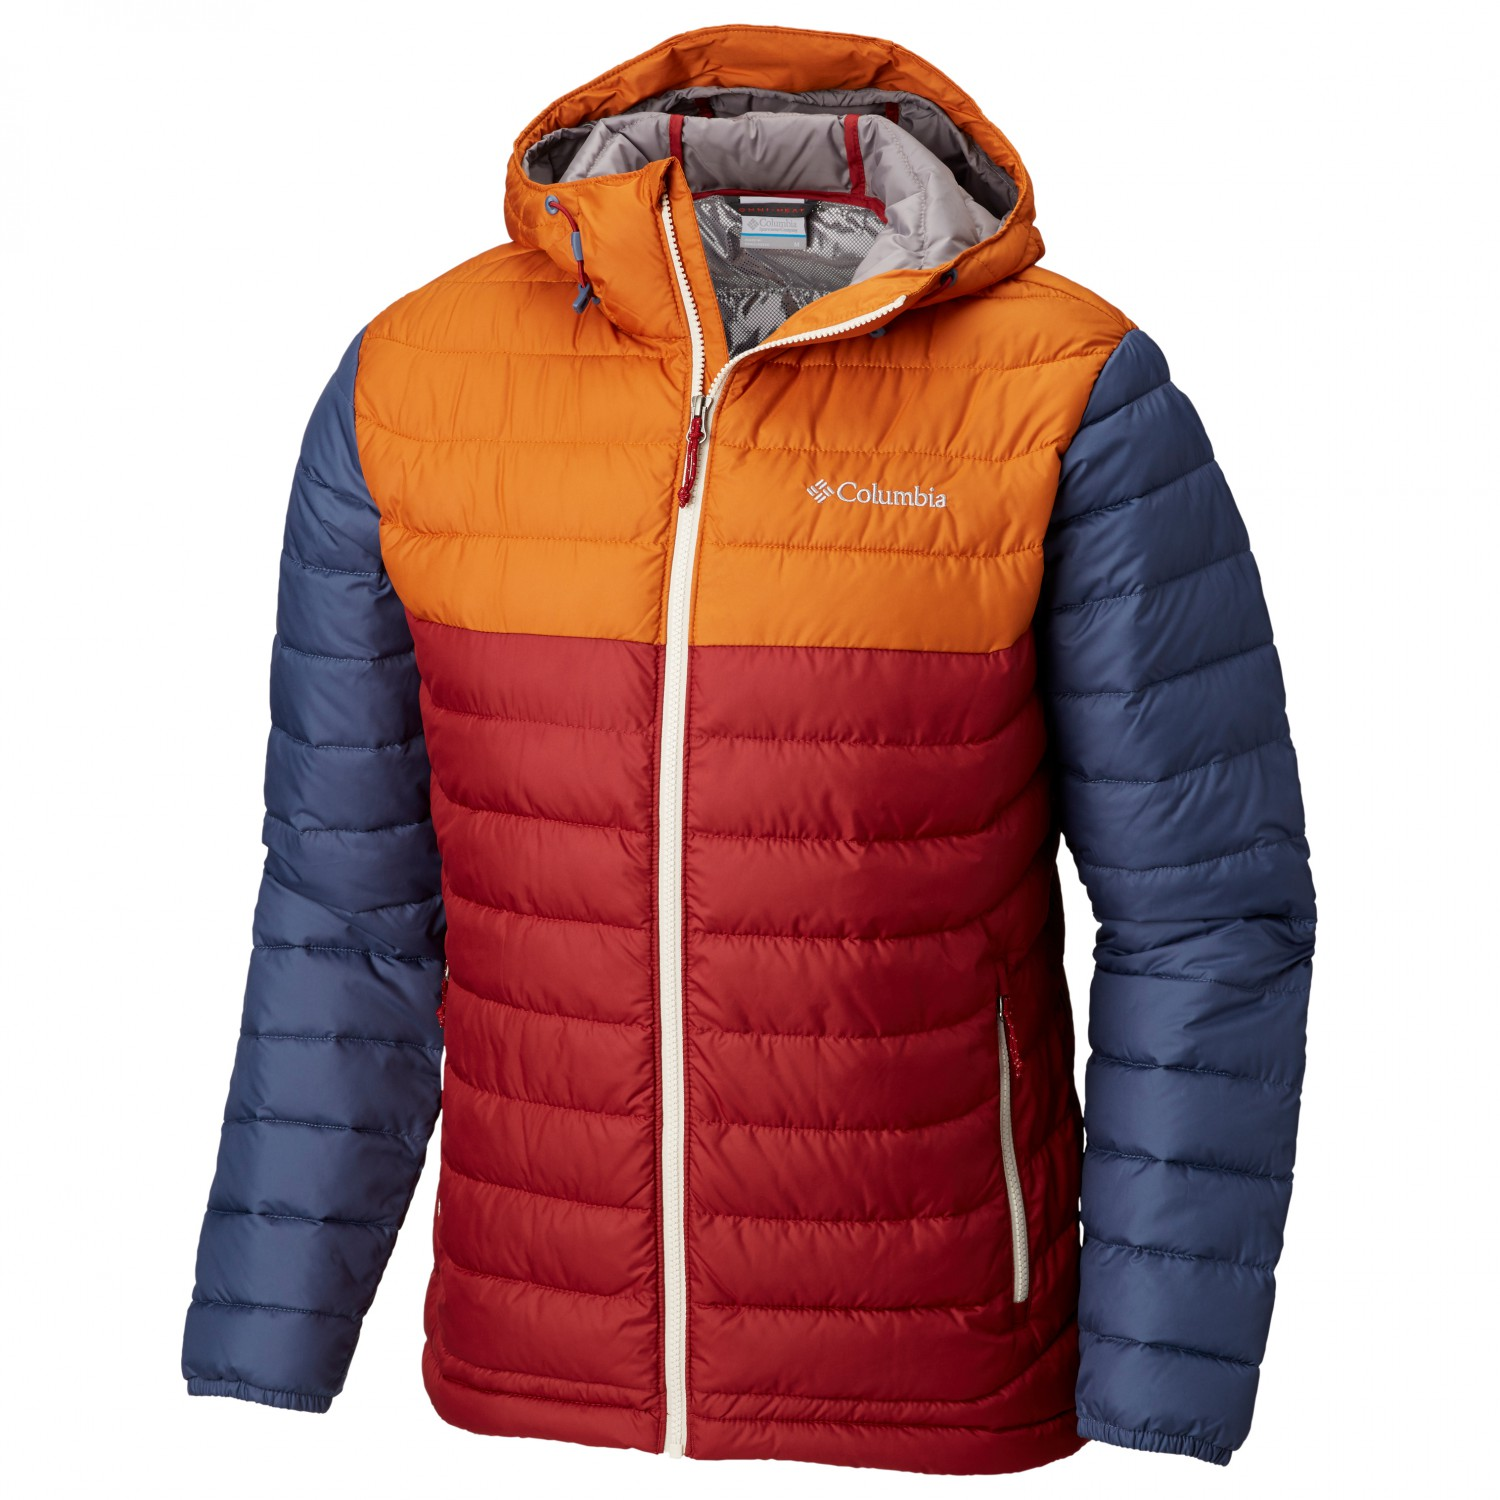 Columbia Powder Lite Hooded Jacket Veste synthétique Homme